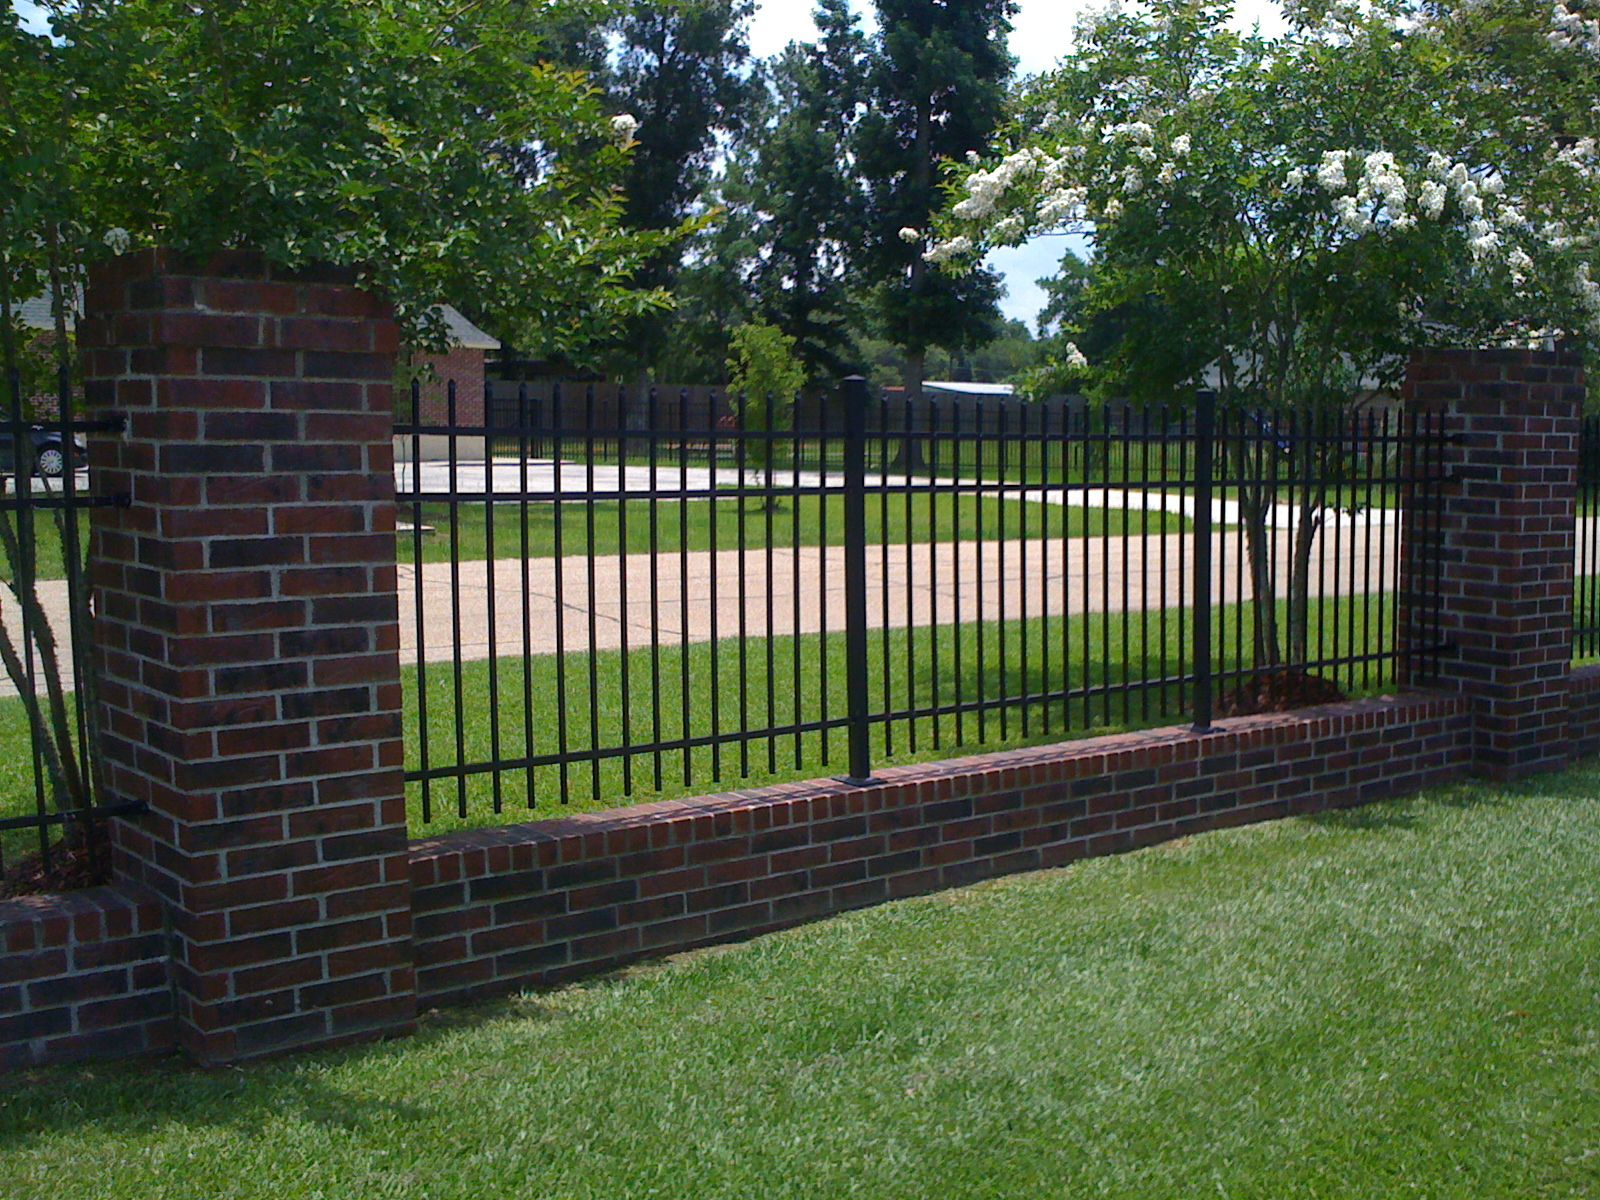 Brick Wrought Iron Fence Designs With Images Parkan